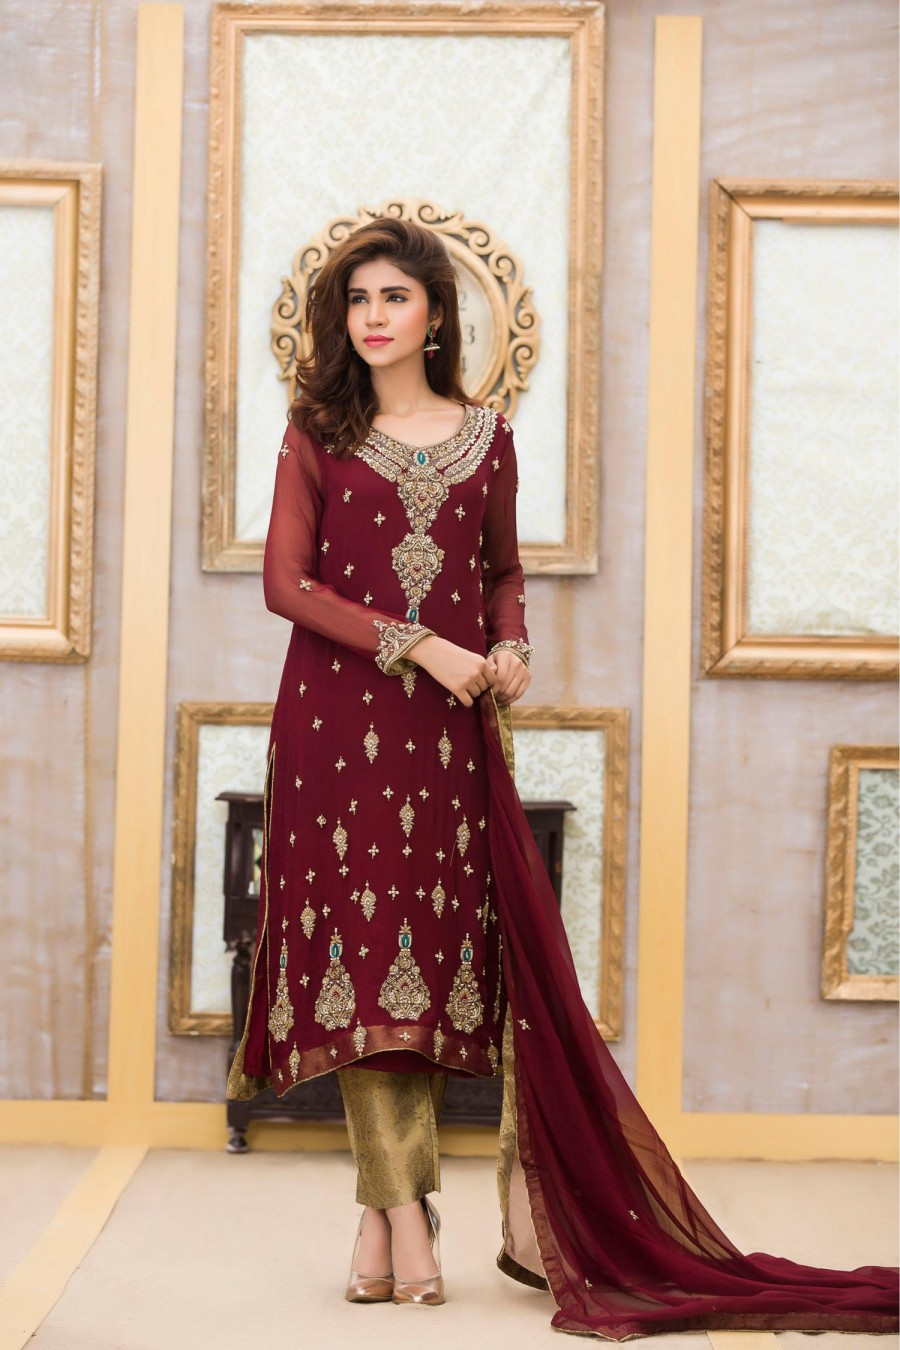 Exclusive bridal stylish maroon color dress exclusiveinn for Boutique wedding guest dresses